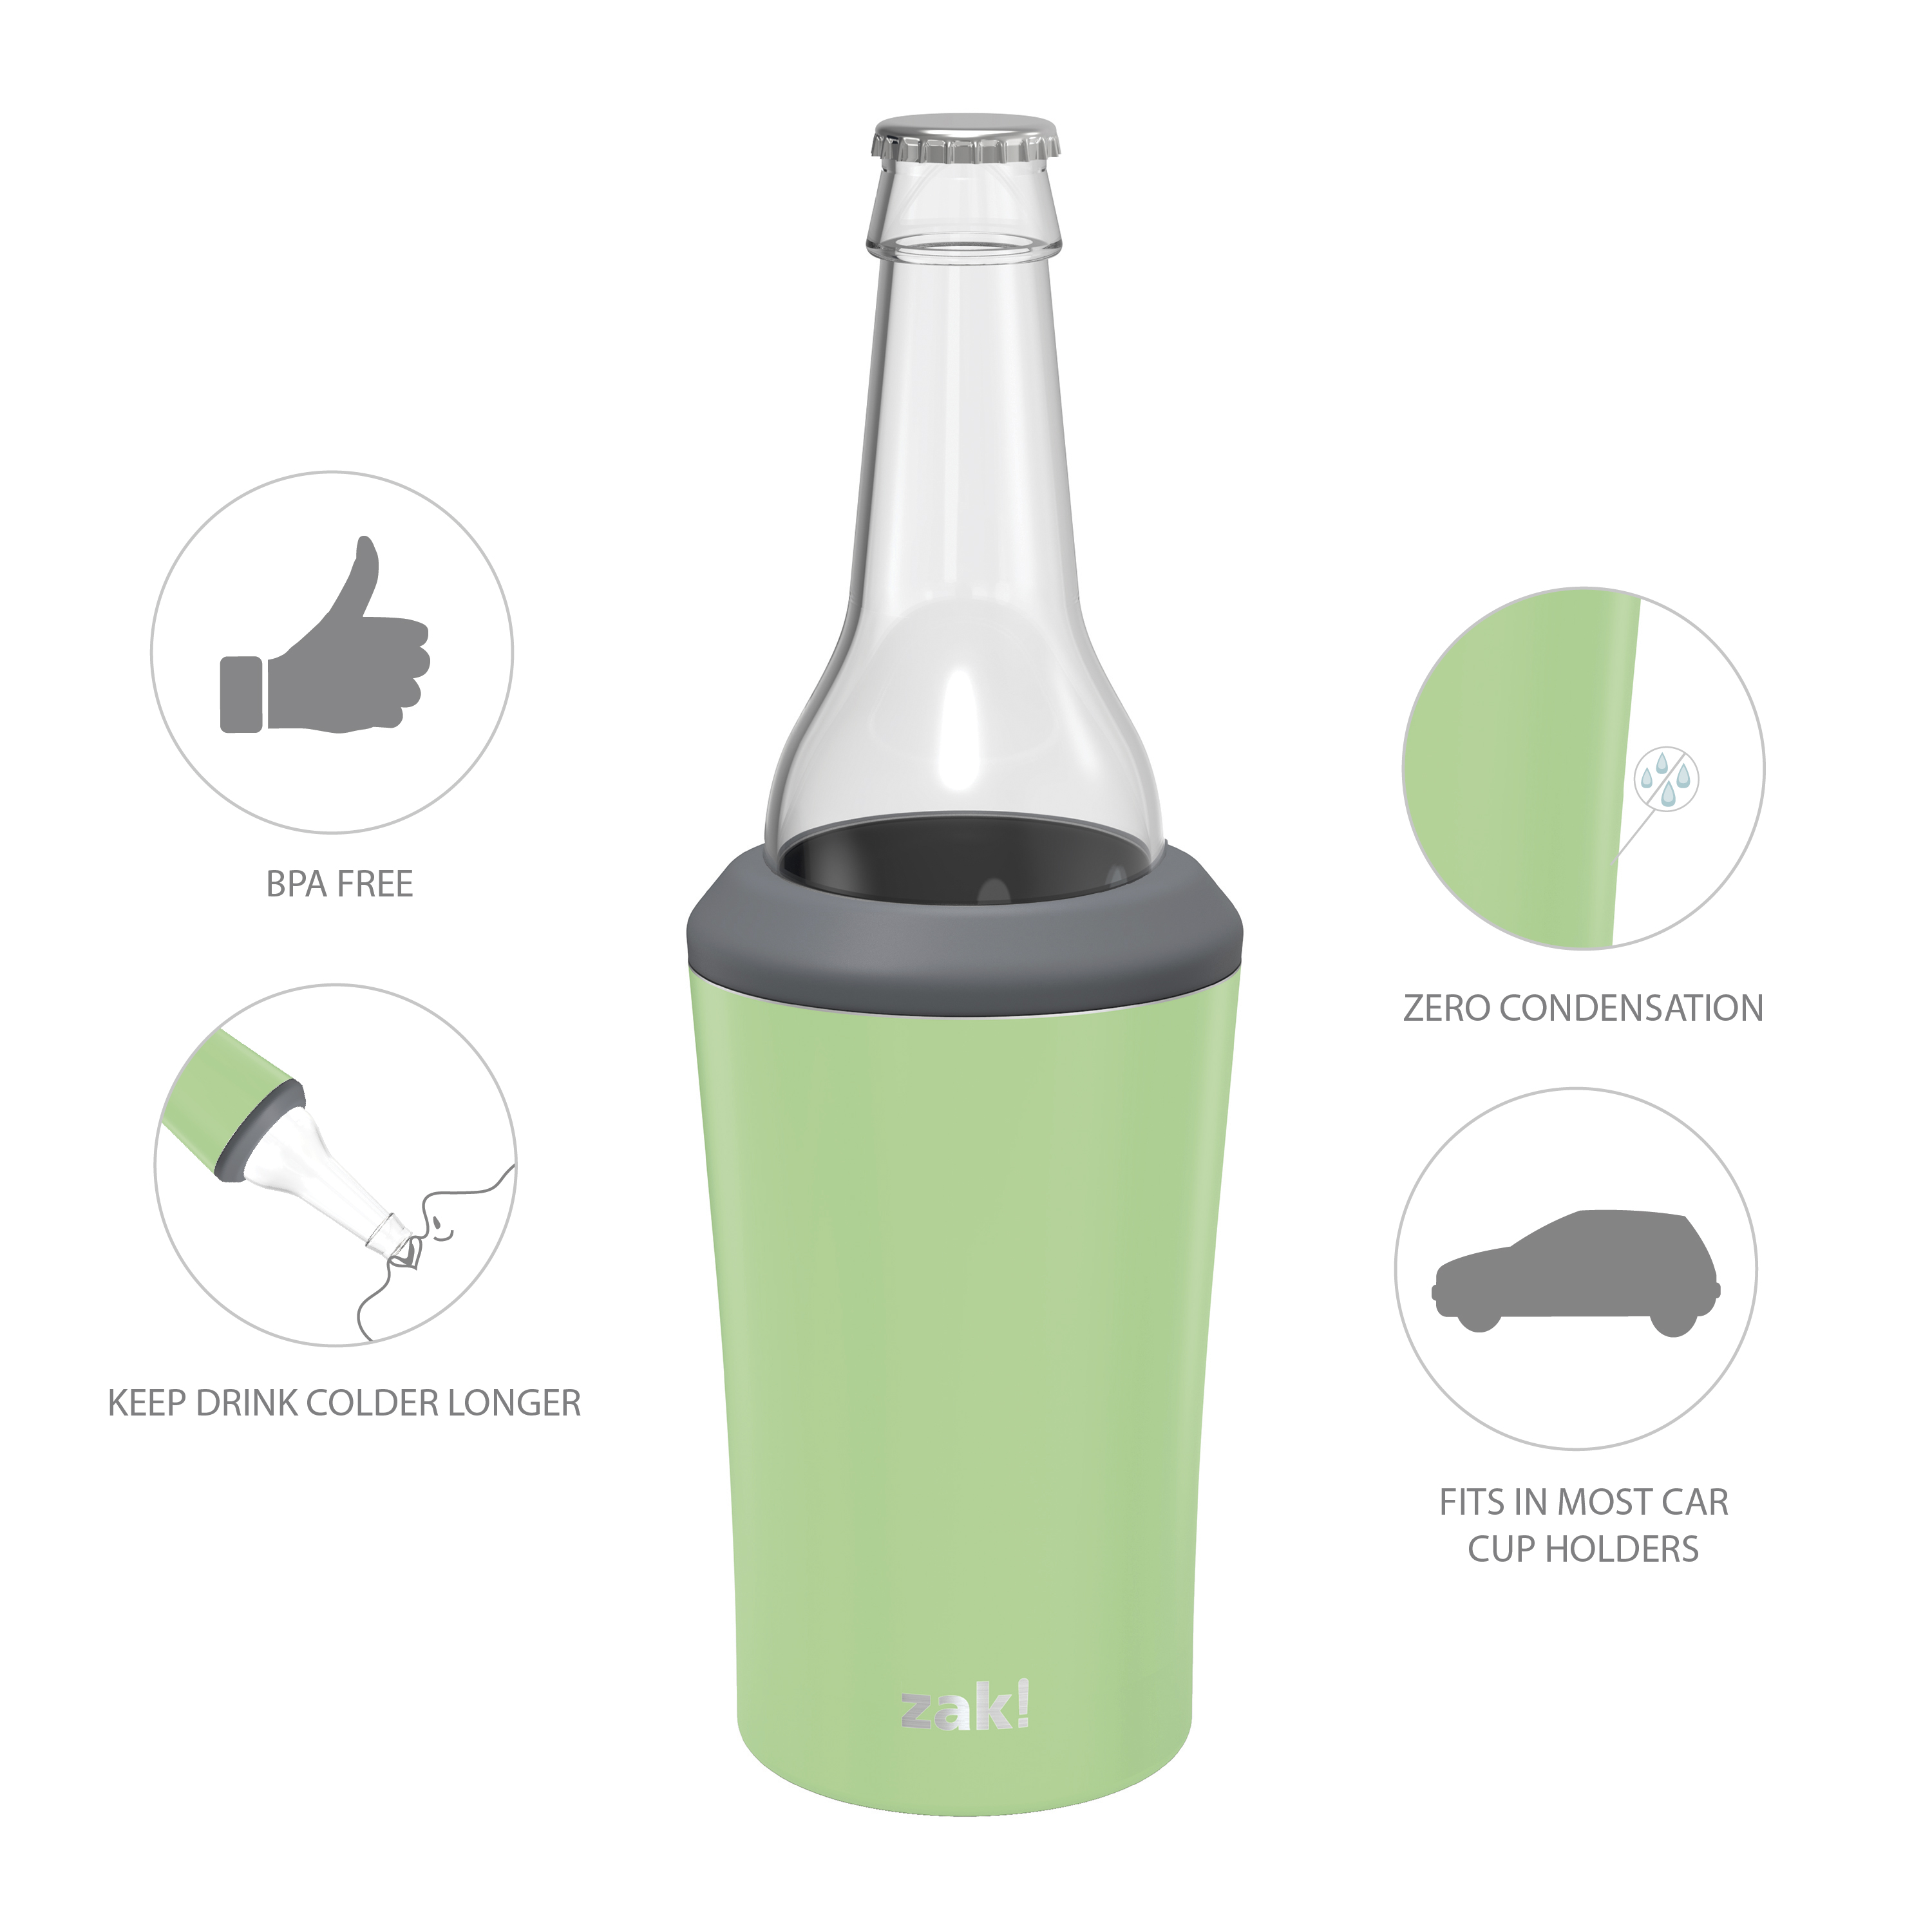 Zak Hydration 12 ounce Double Wall Stainless Steel Can and Bottle Cooler with Vacuum Insulation, Pistachio slideshow image 7